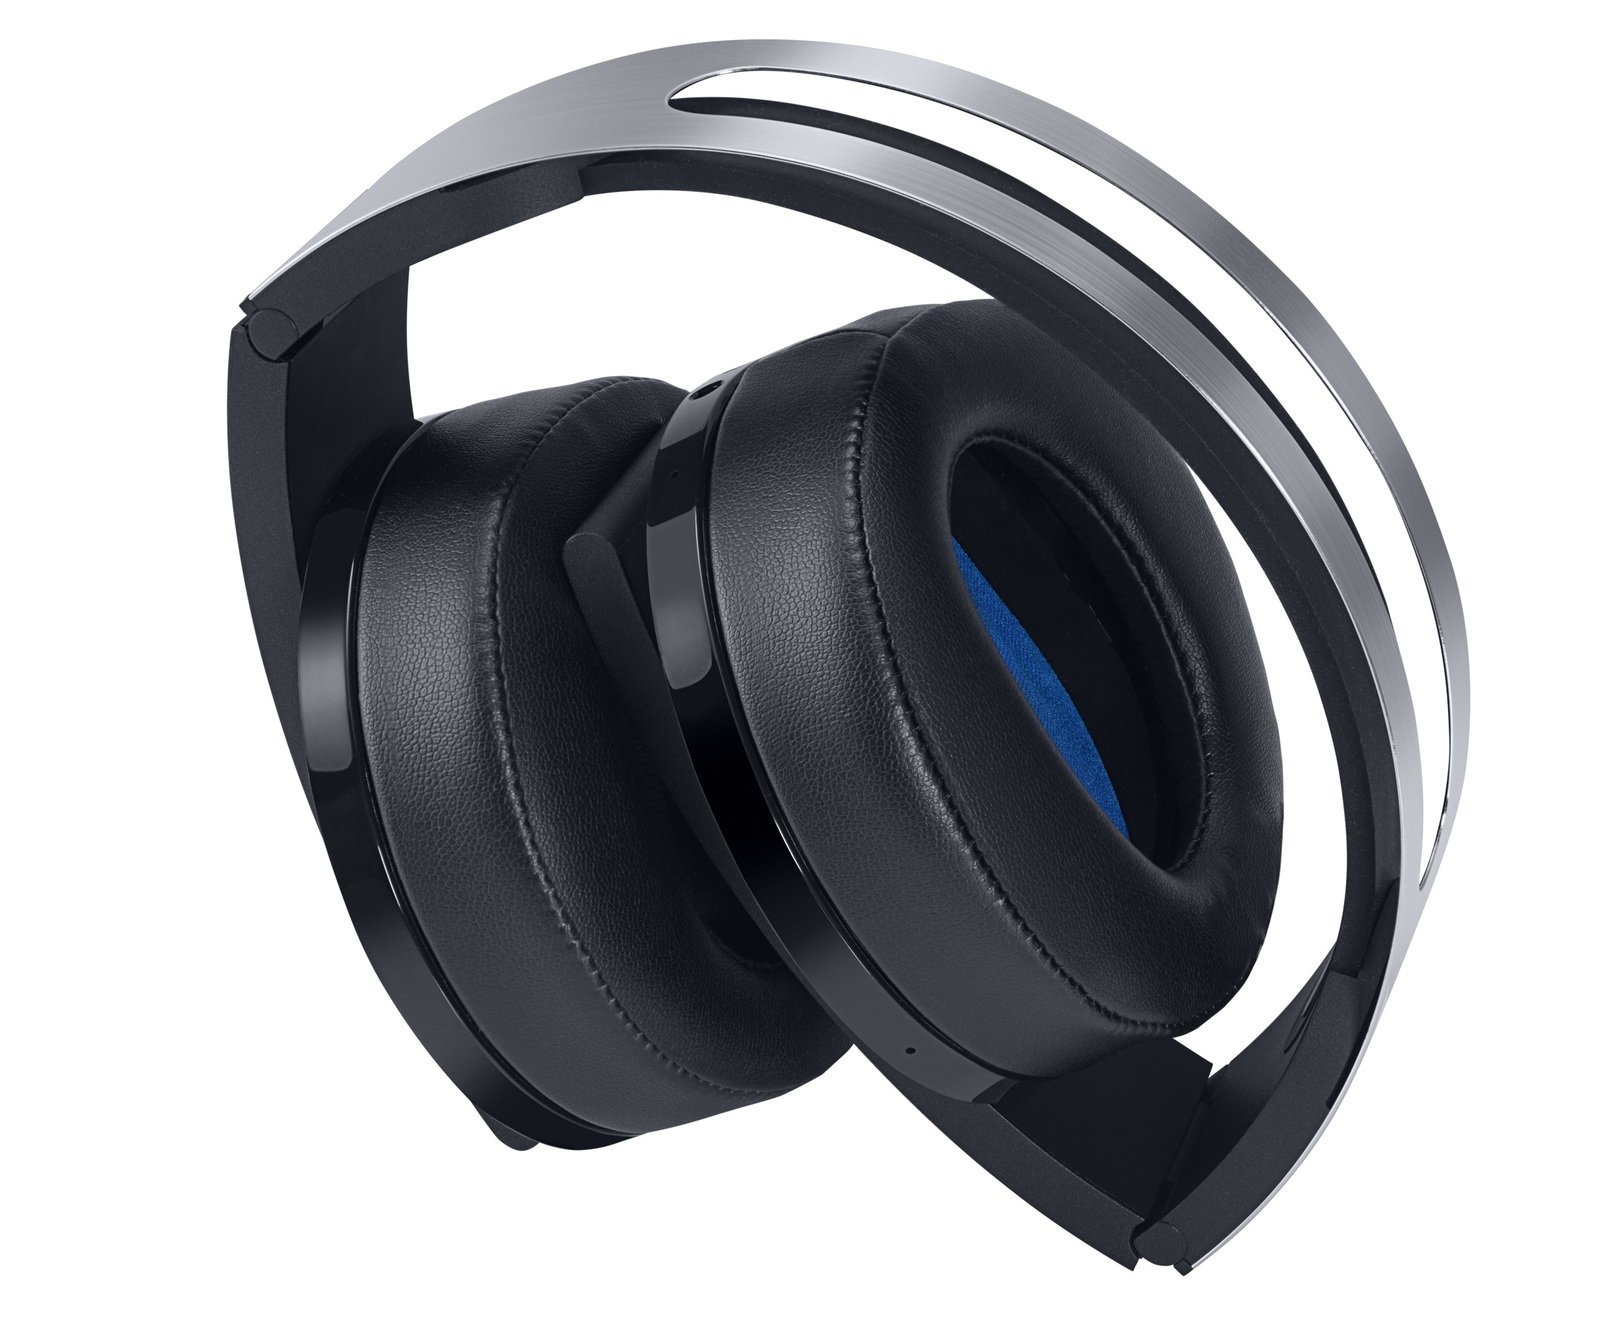 Official PlayStation 4 Platinum 7 1 Wireless Gaming Headset